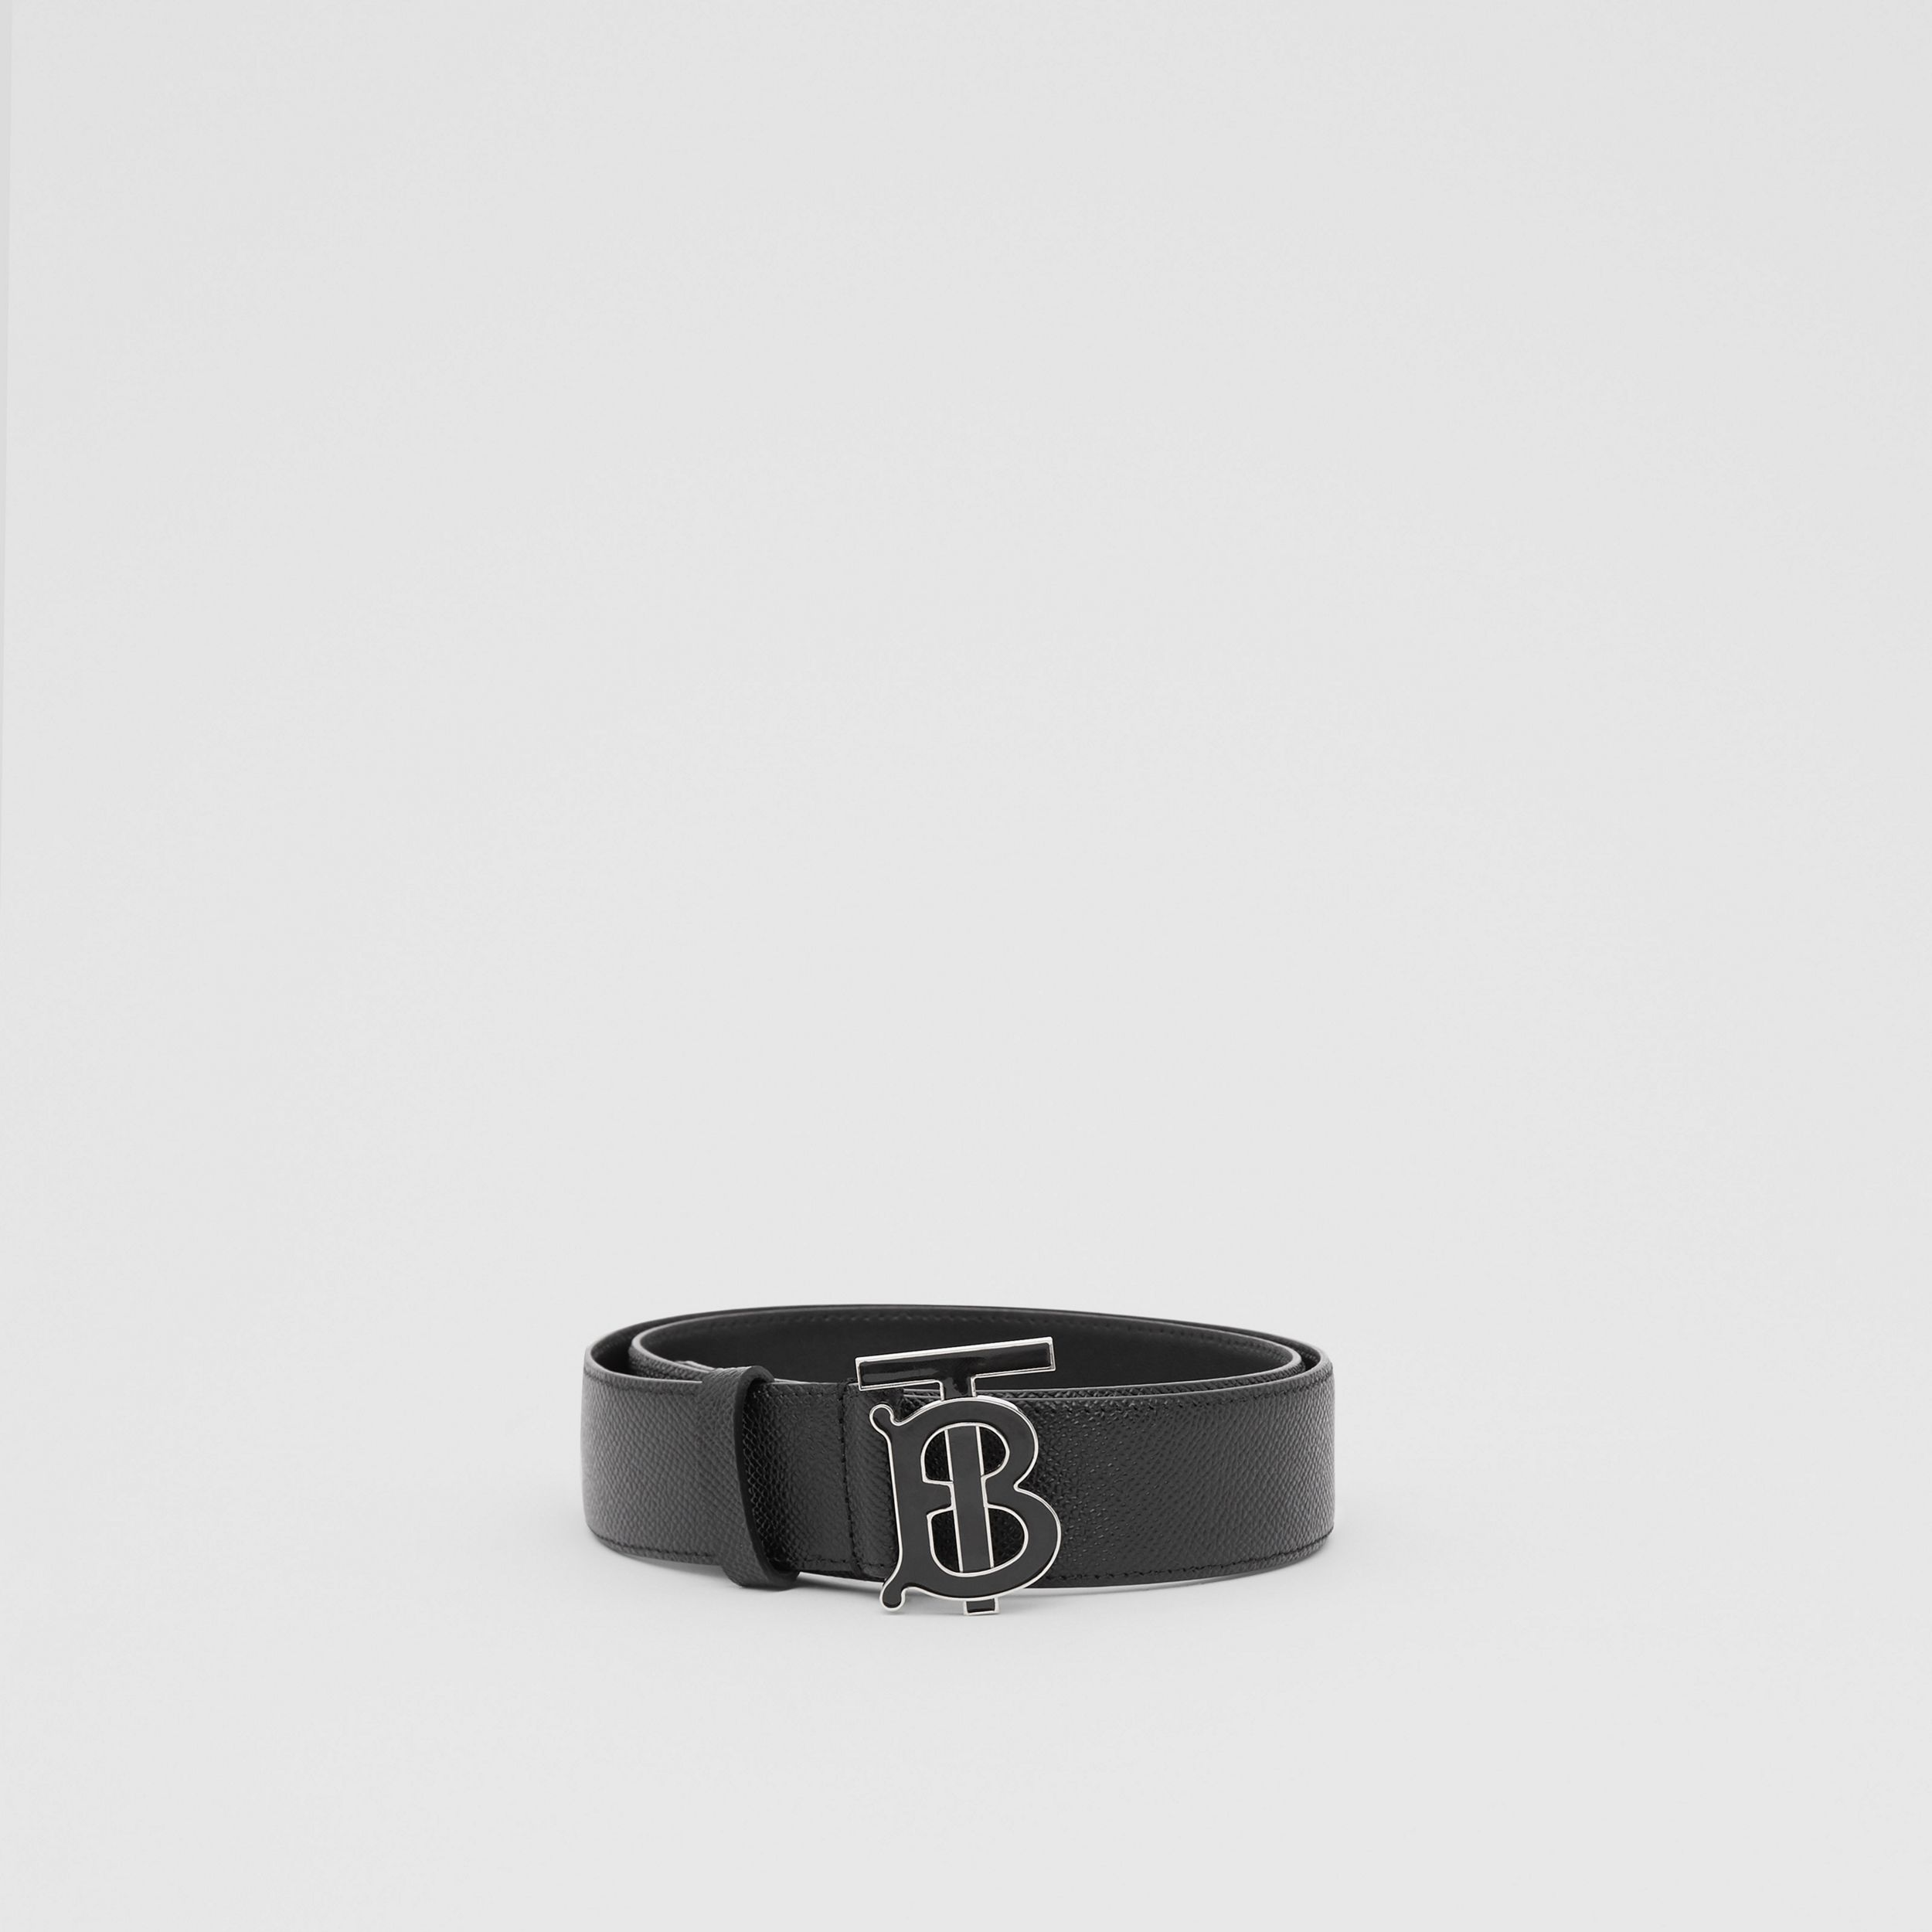 Monogram Motif Grainy Leather Belt in Black - Men | Burberry Hong Kong S.A.R. - 4